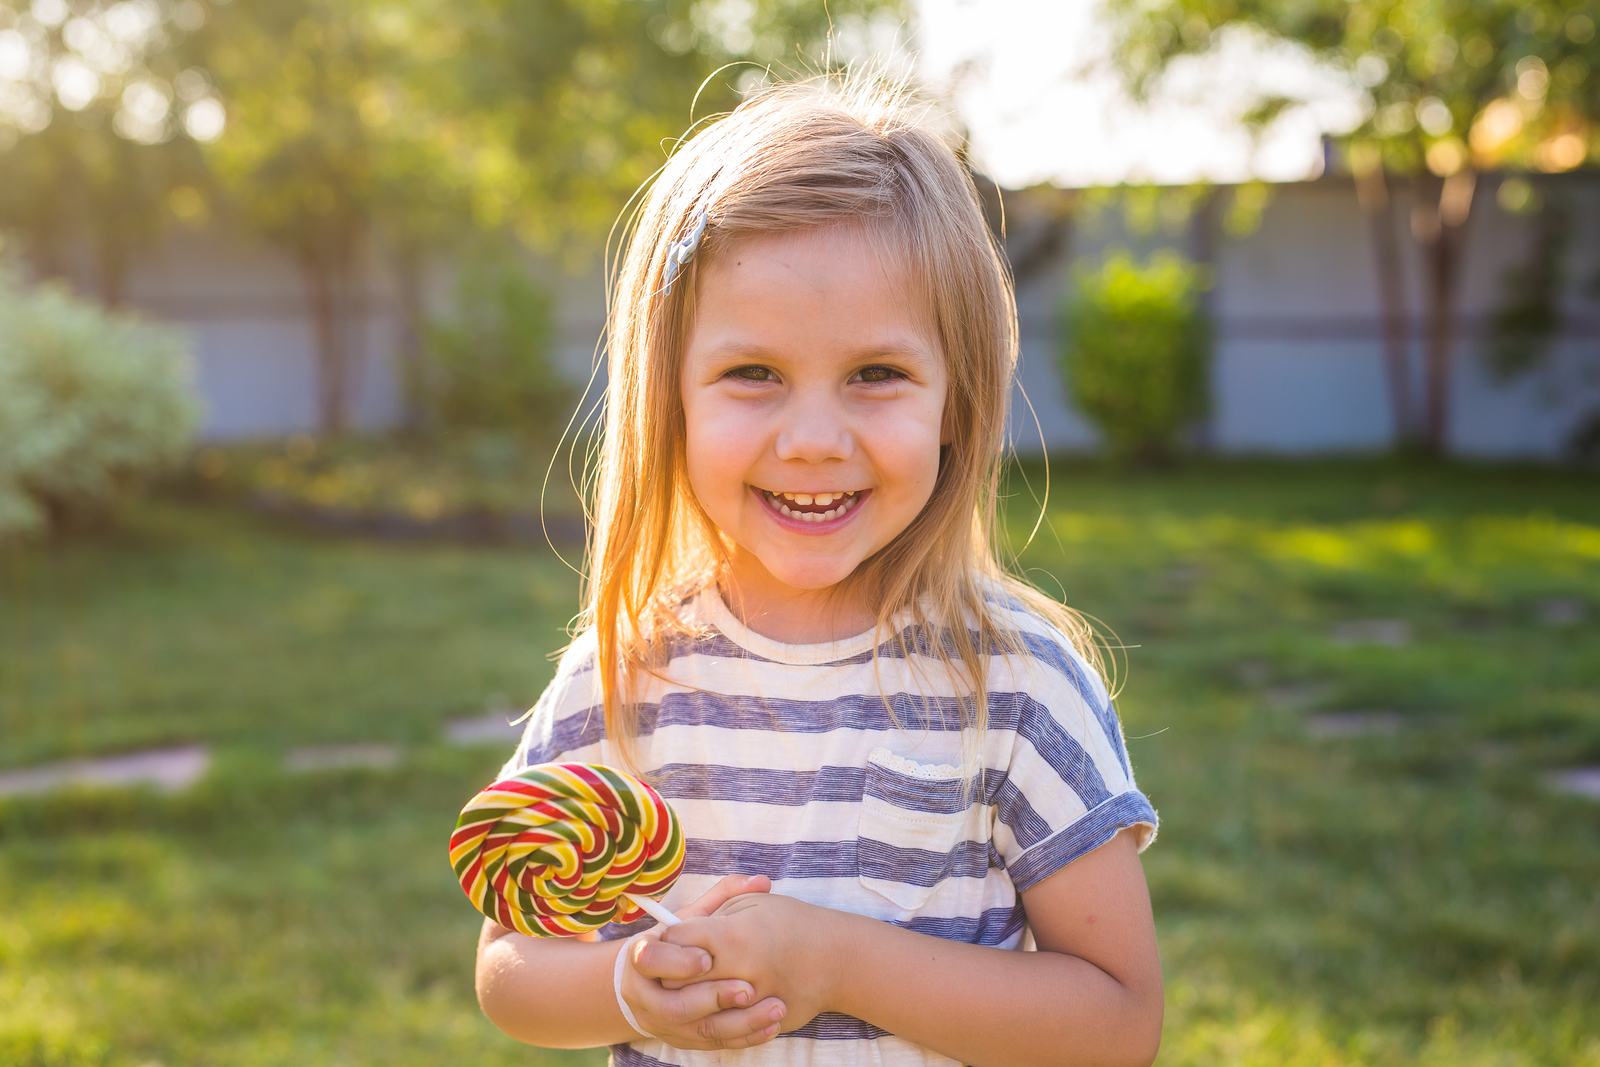 Where do you stand? Should we allow our kids one sugary treat a day?